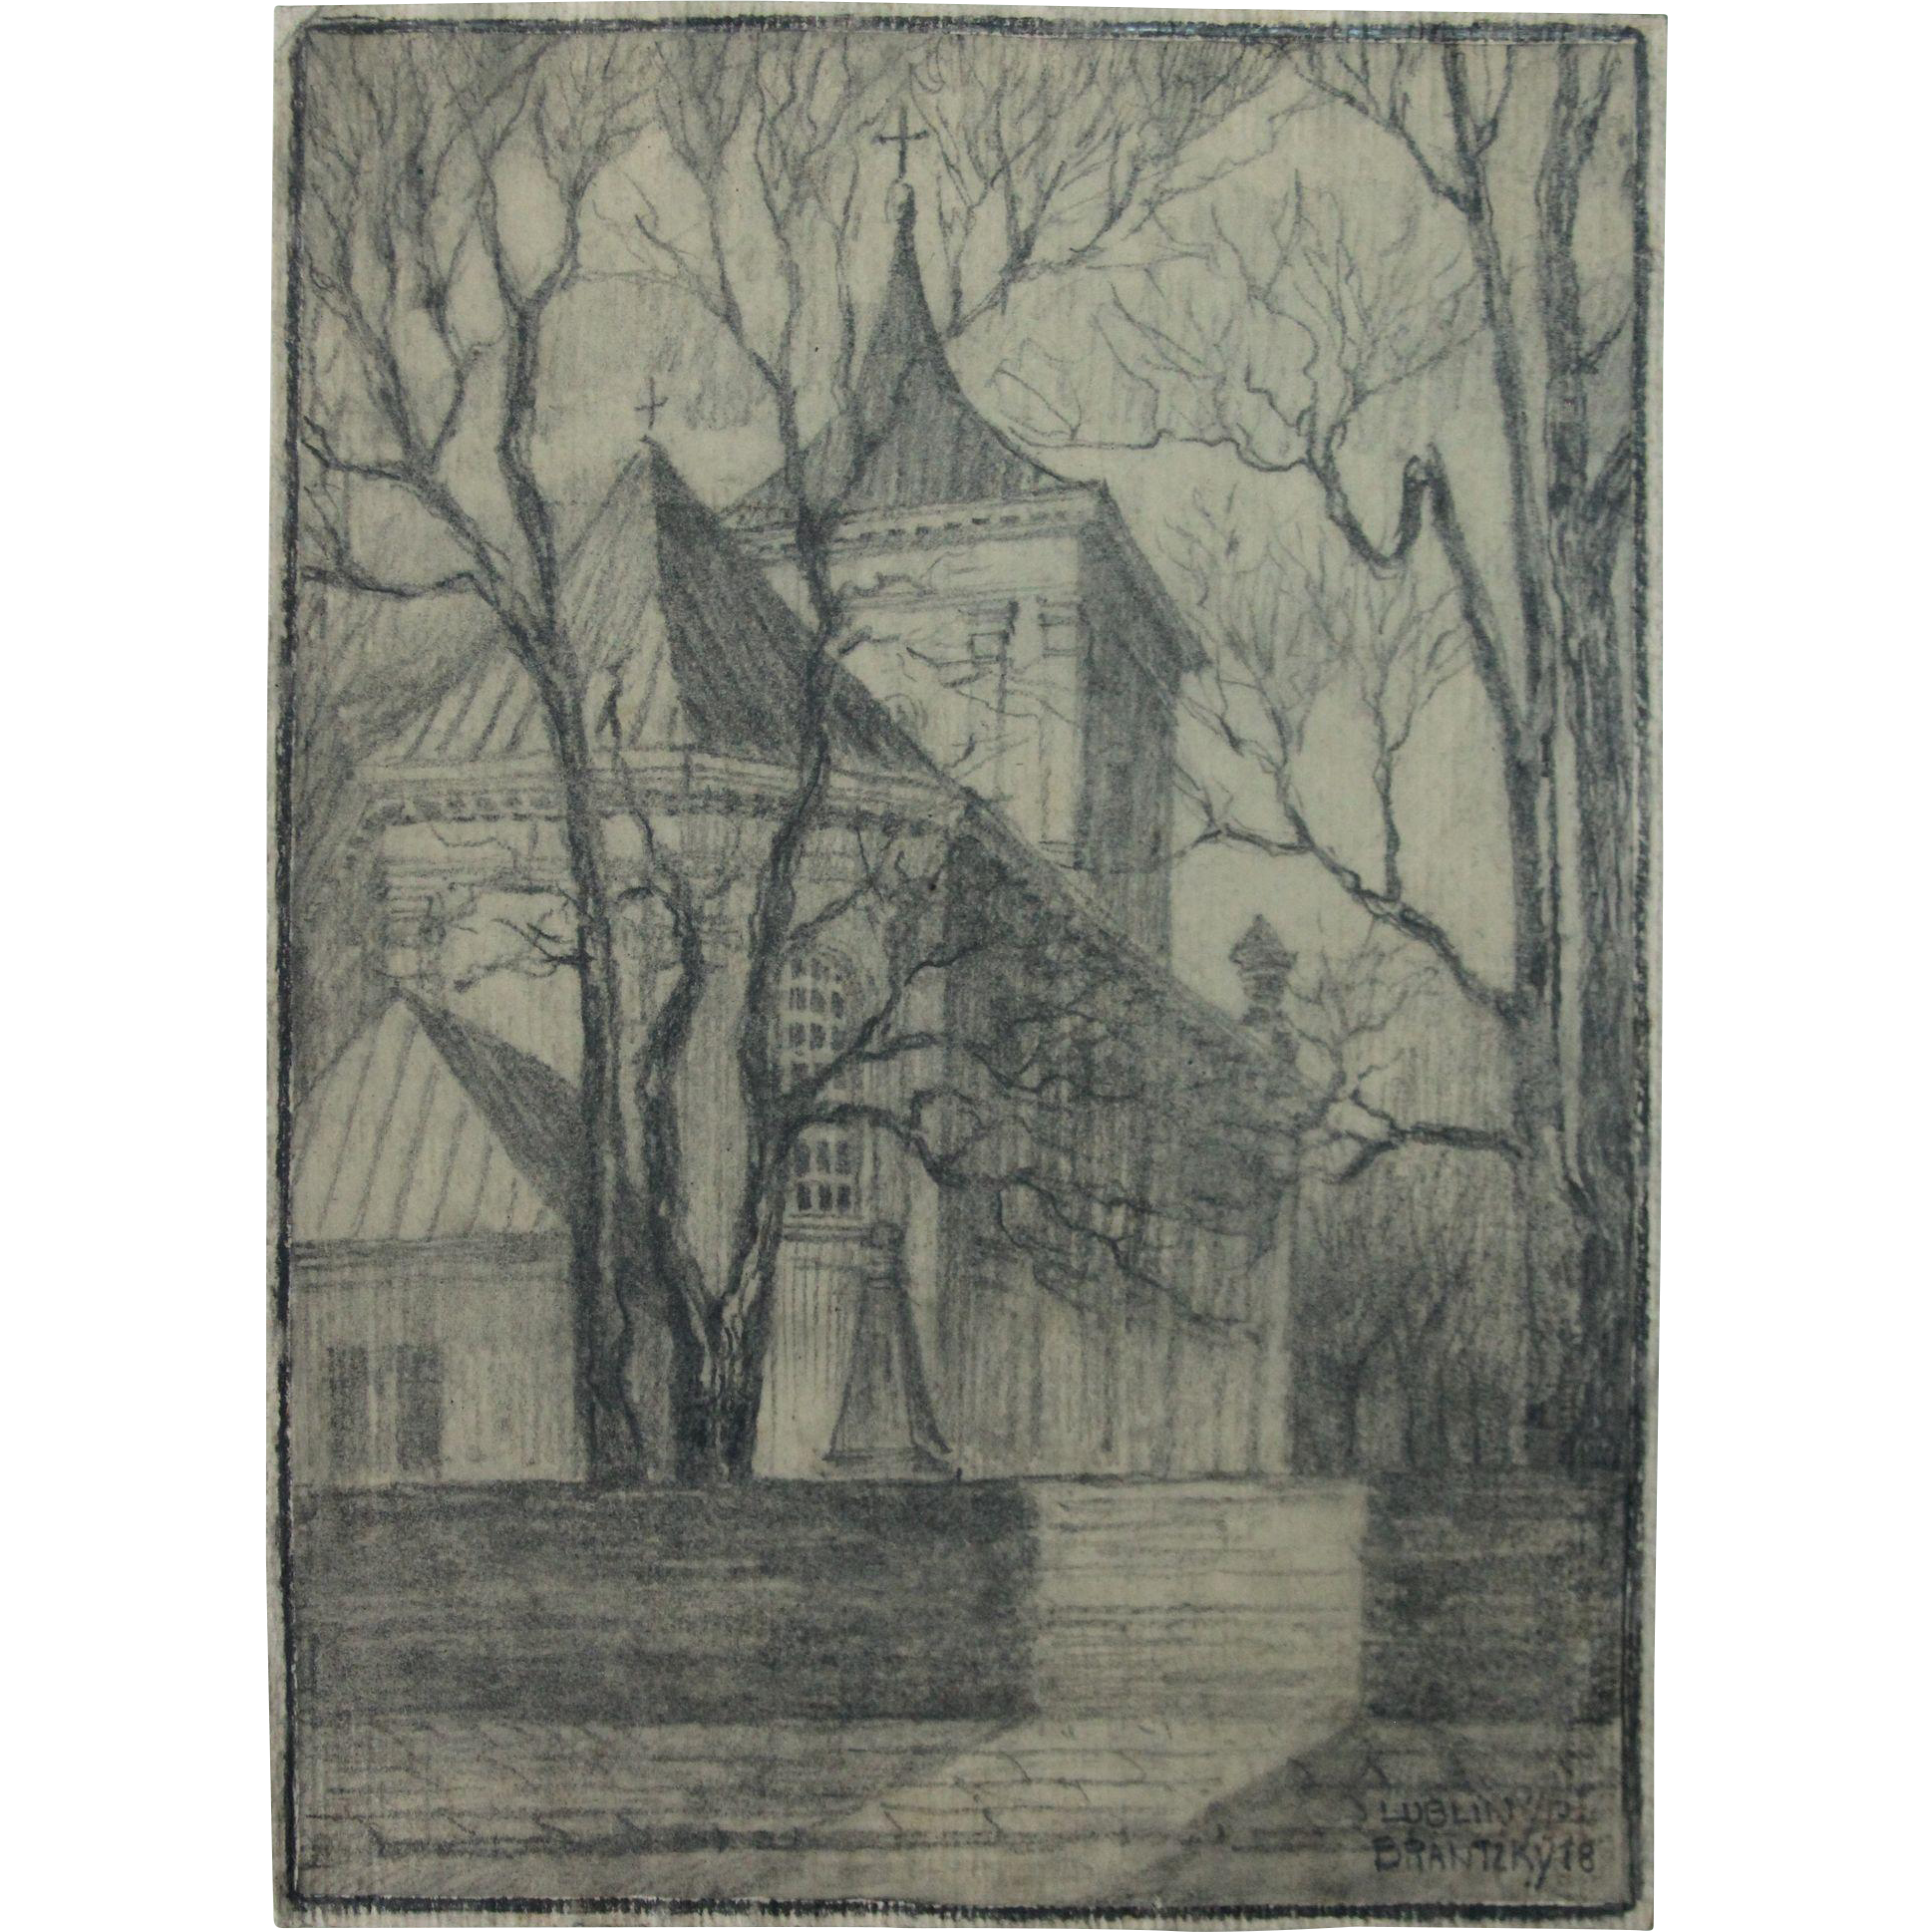 Candlestick drawing charcoal. Original of a church